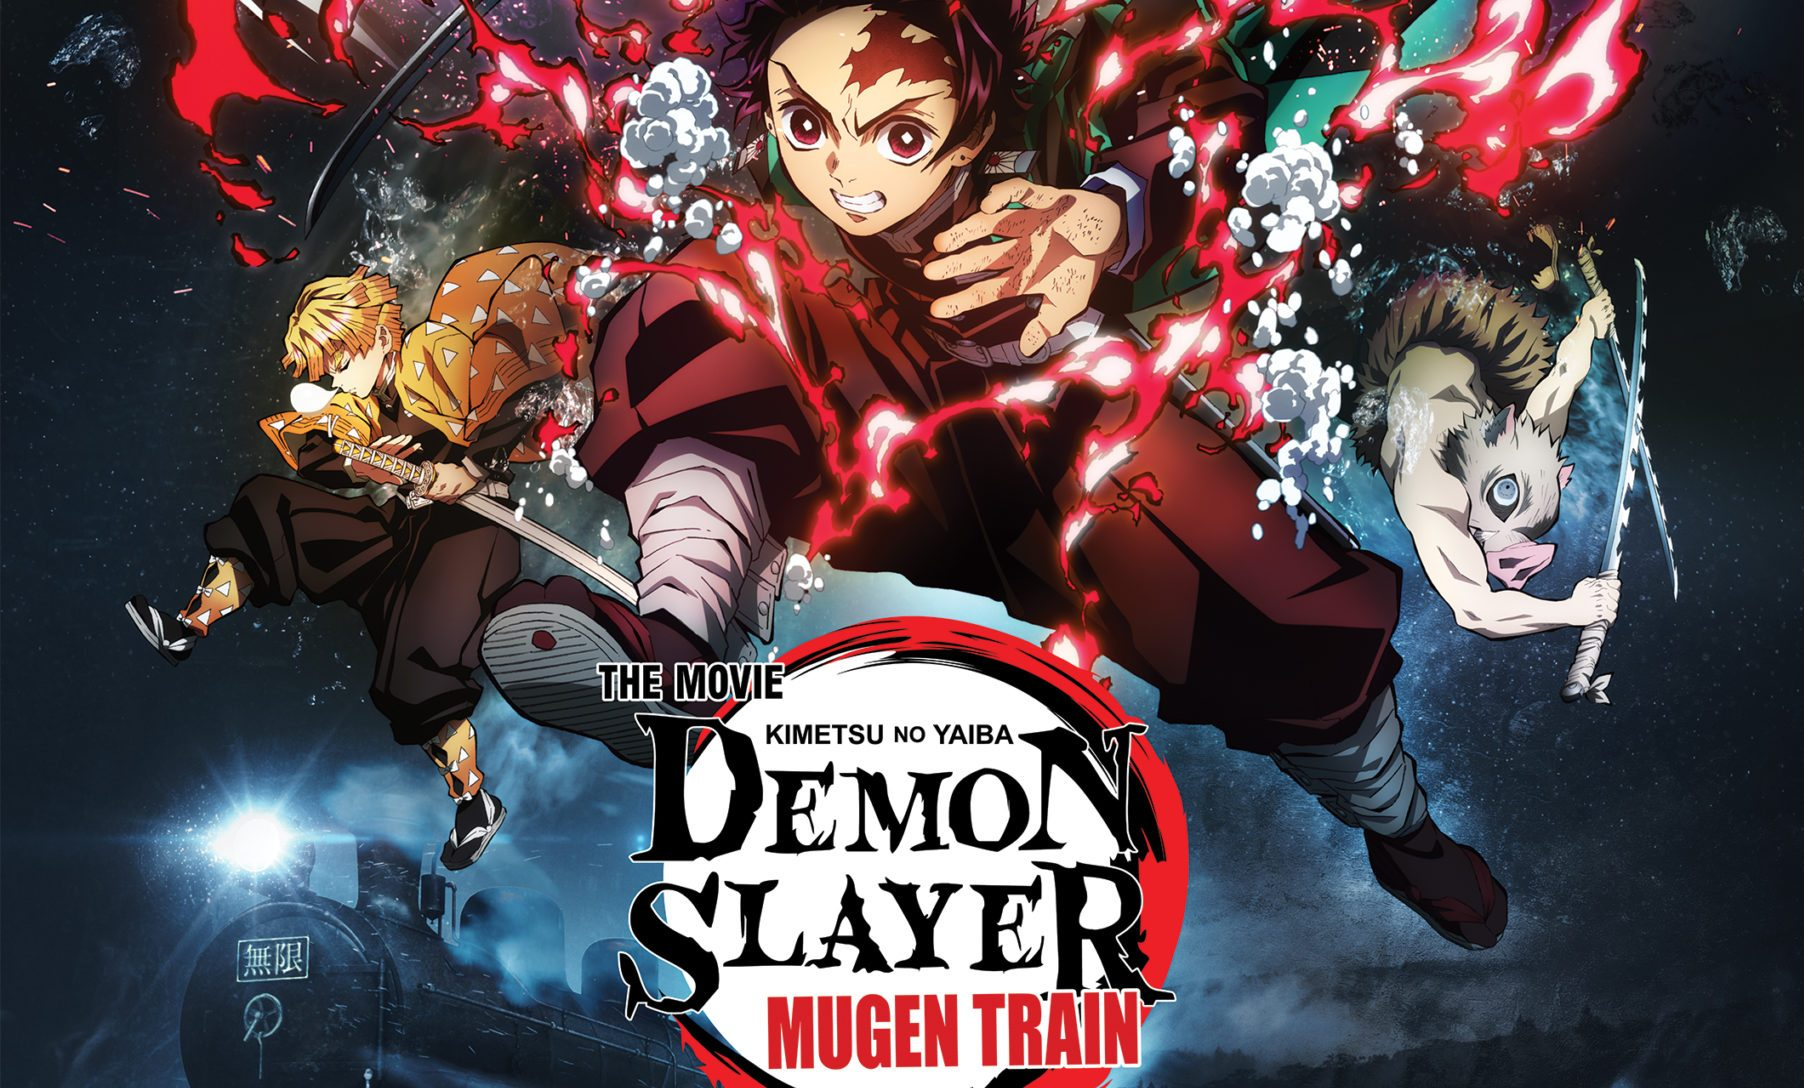 Demon Slayer Mugen Train